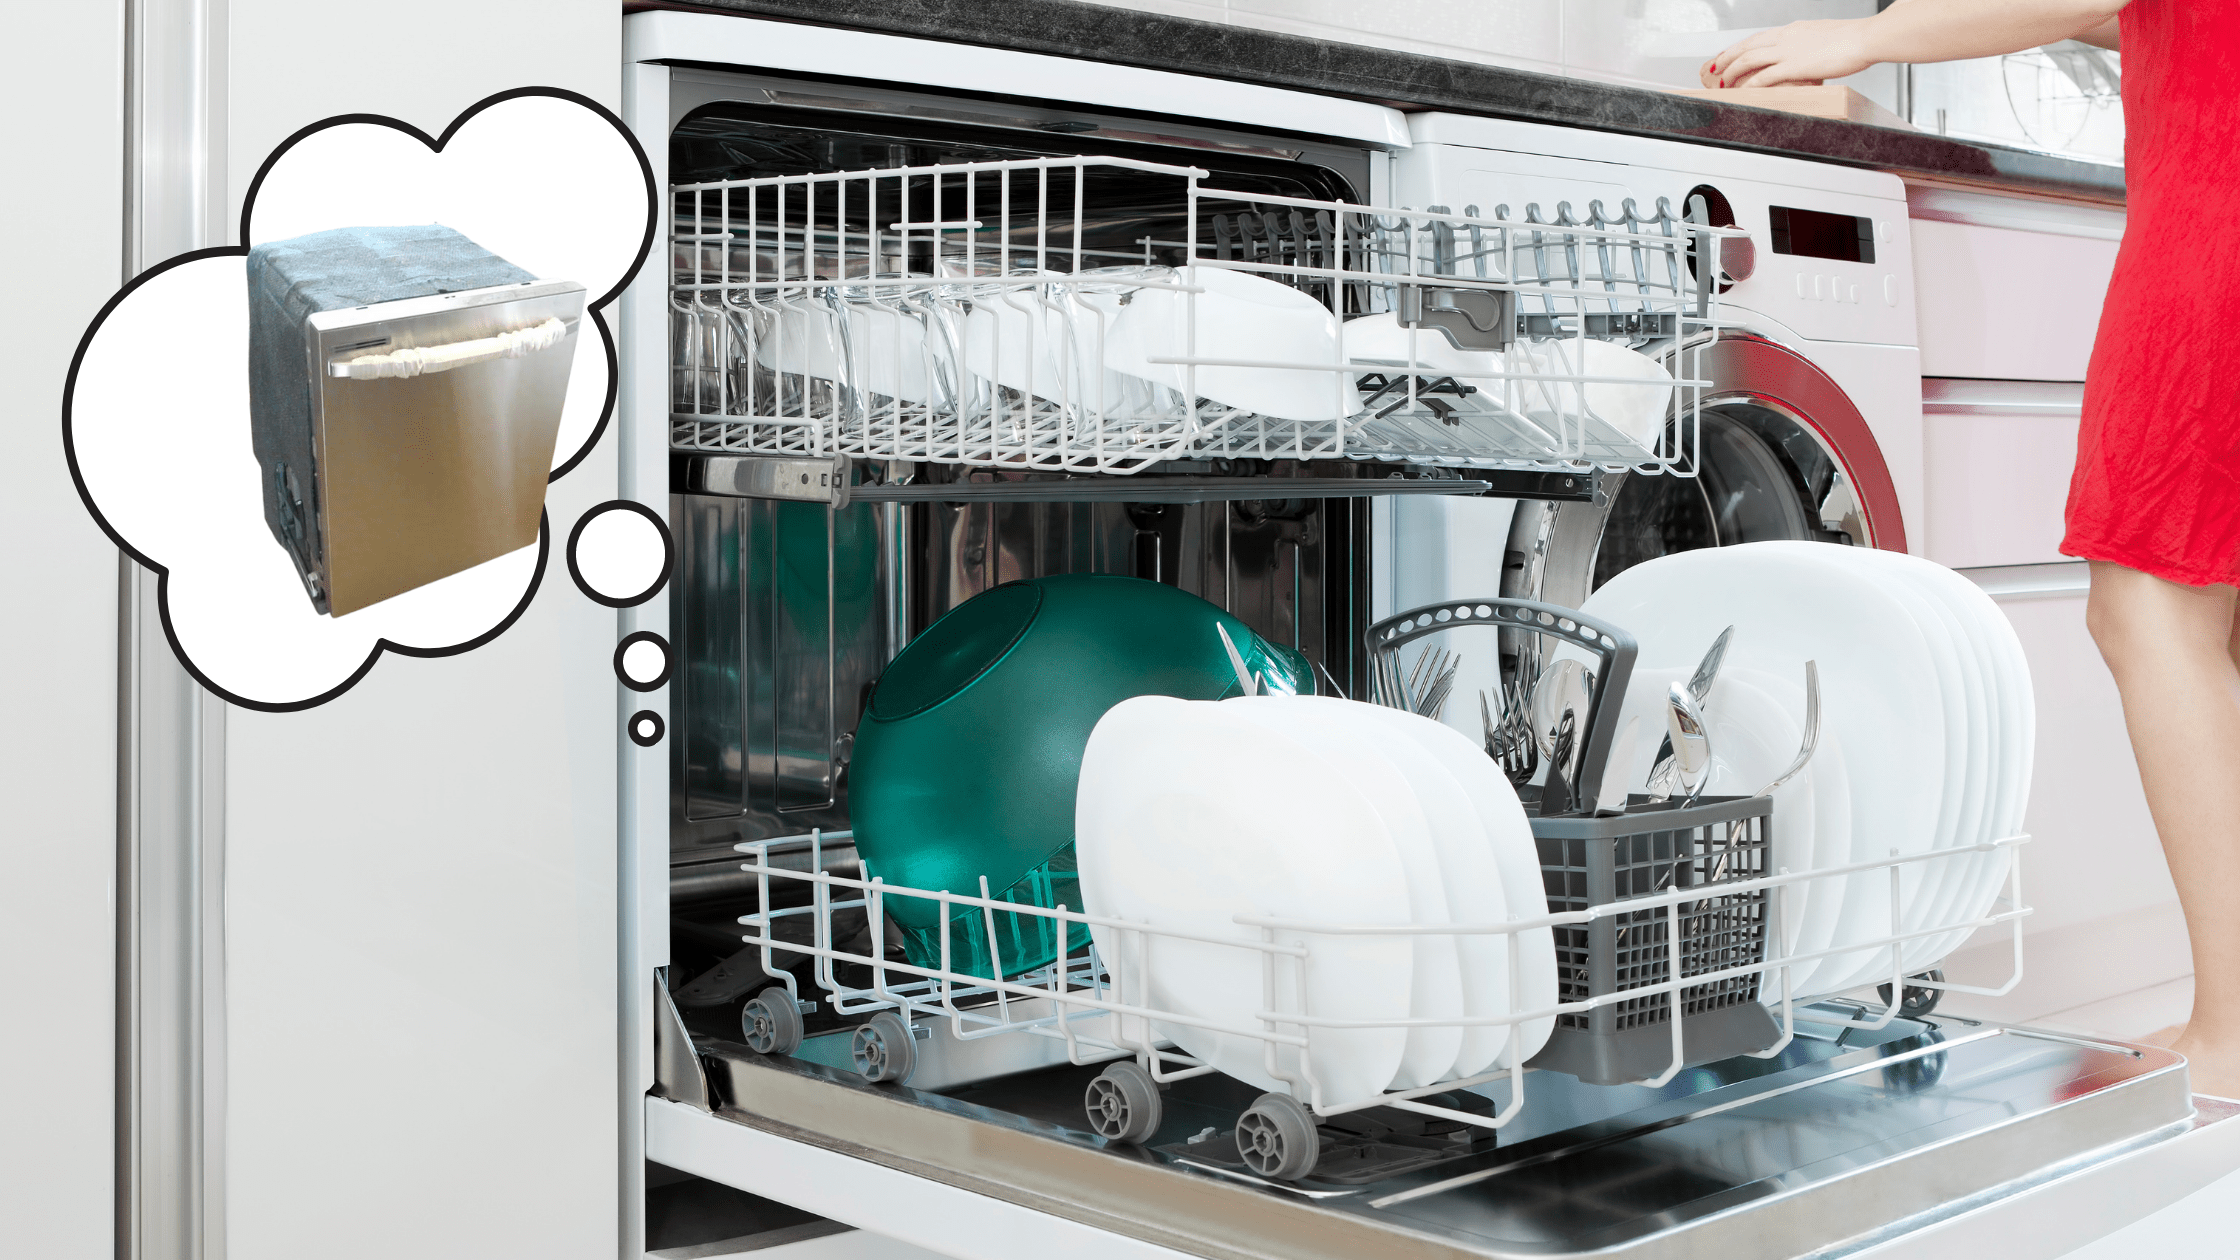 Best dishwasher insulation Blanket Review buying guide for beginner